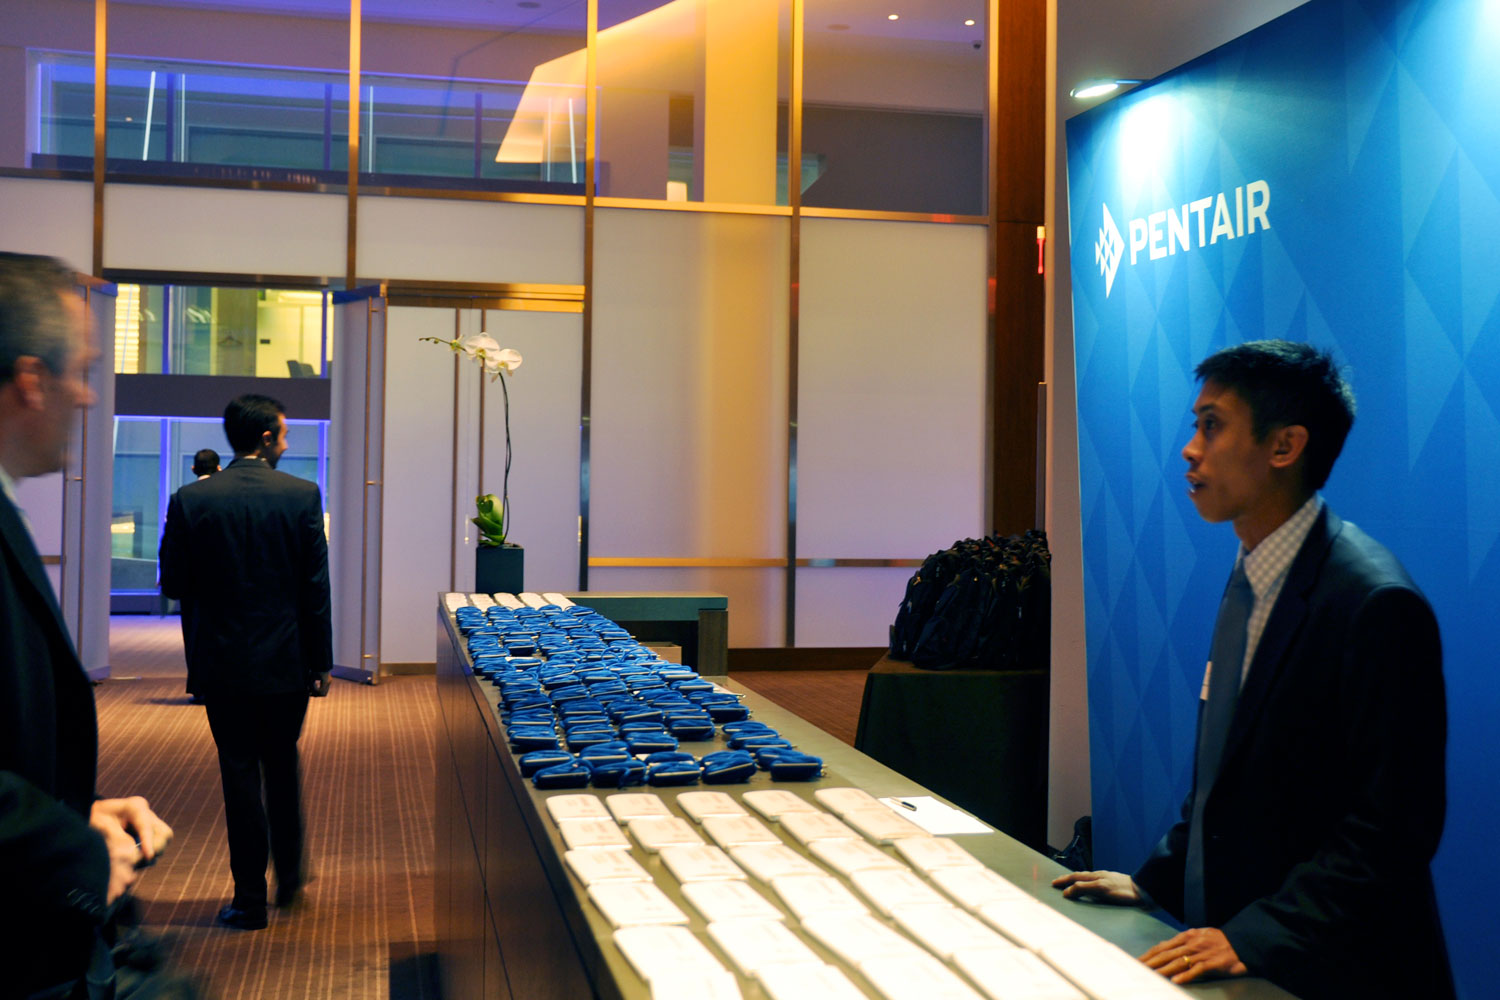 Pentair Investor and Analyst Day registration desk